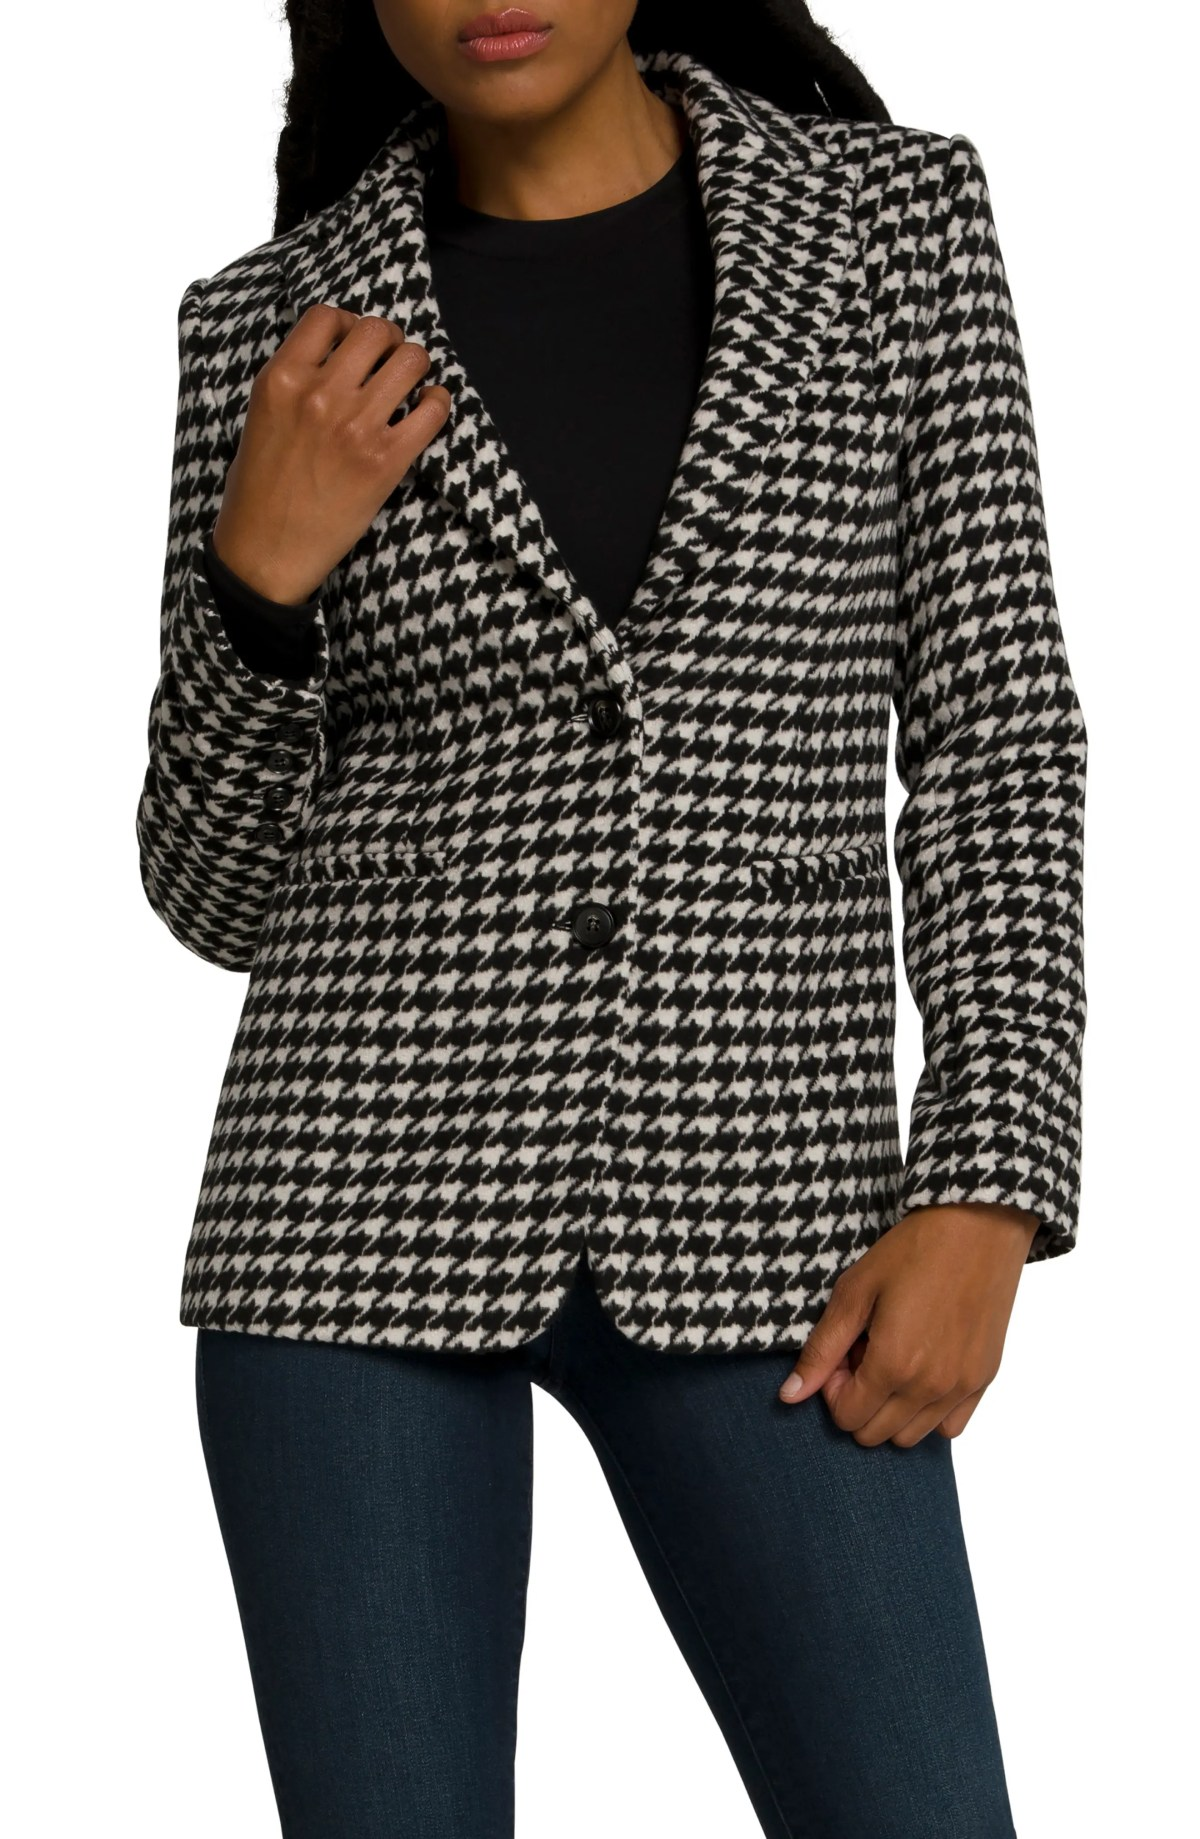 GOOD AMERICAN Houndstooth Blazer, Main, color, HOUNDSTOOTH001